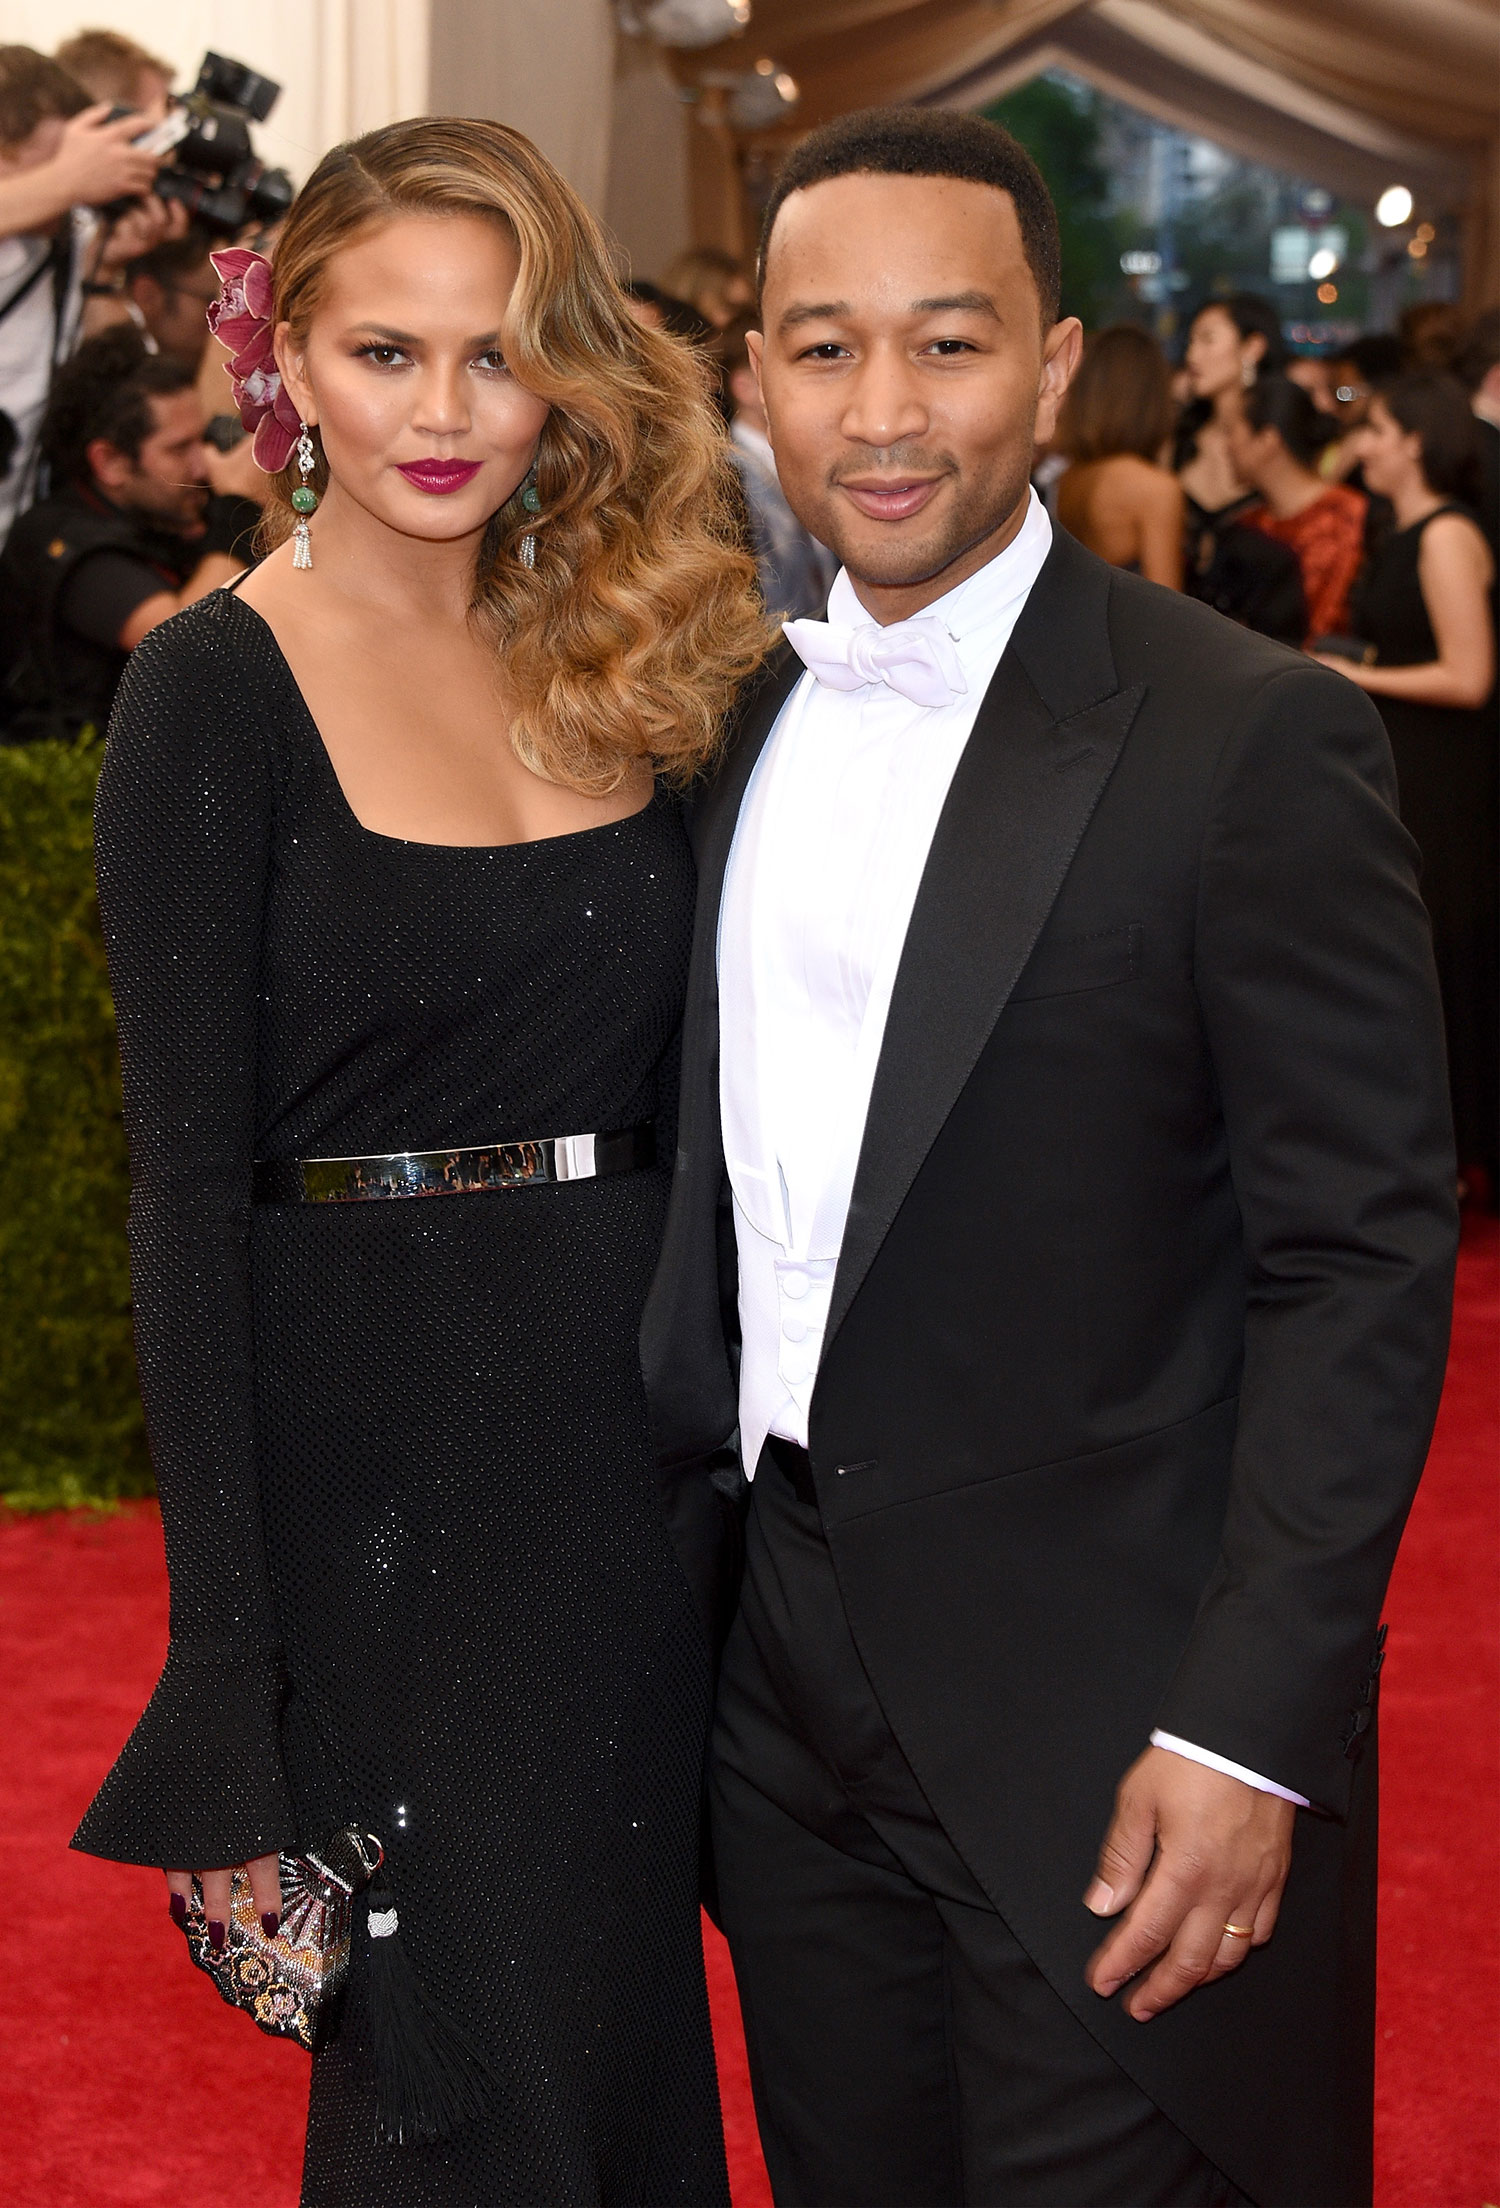 Chrissy Teigen and John Legend attend the 'China: Through The Looking Glass' Costume Institute Benefit Gala at the Metropolitan Museum of Art.